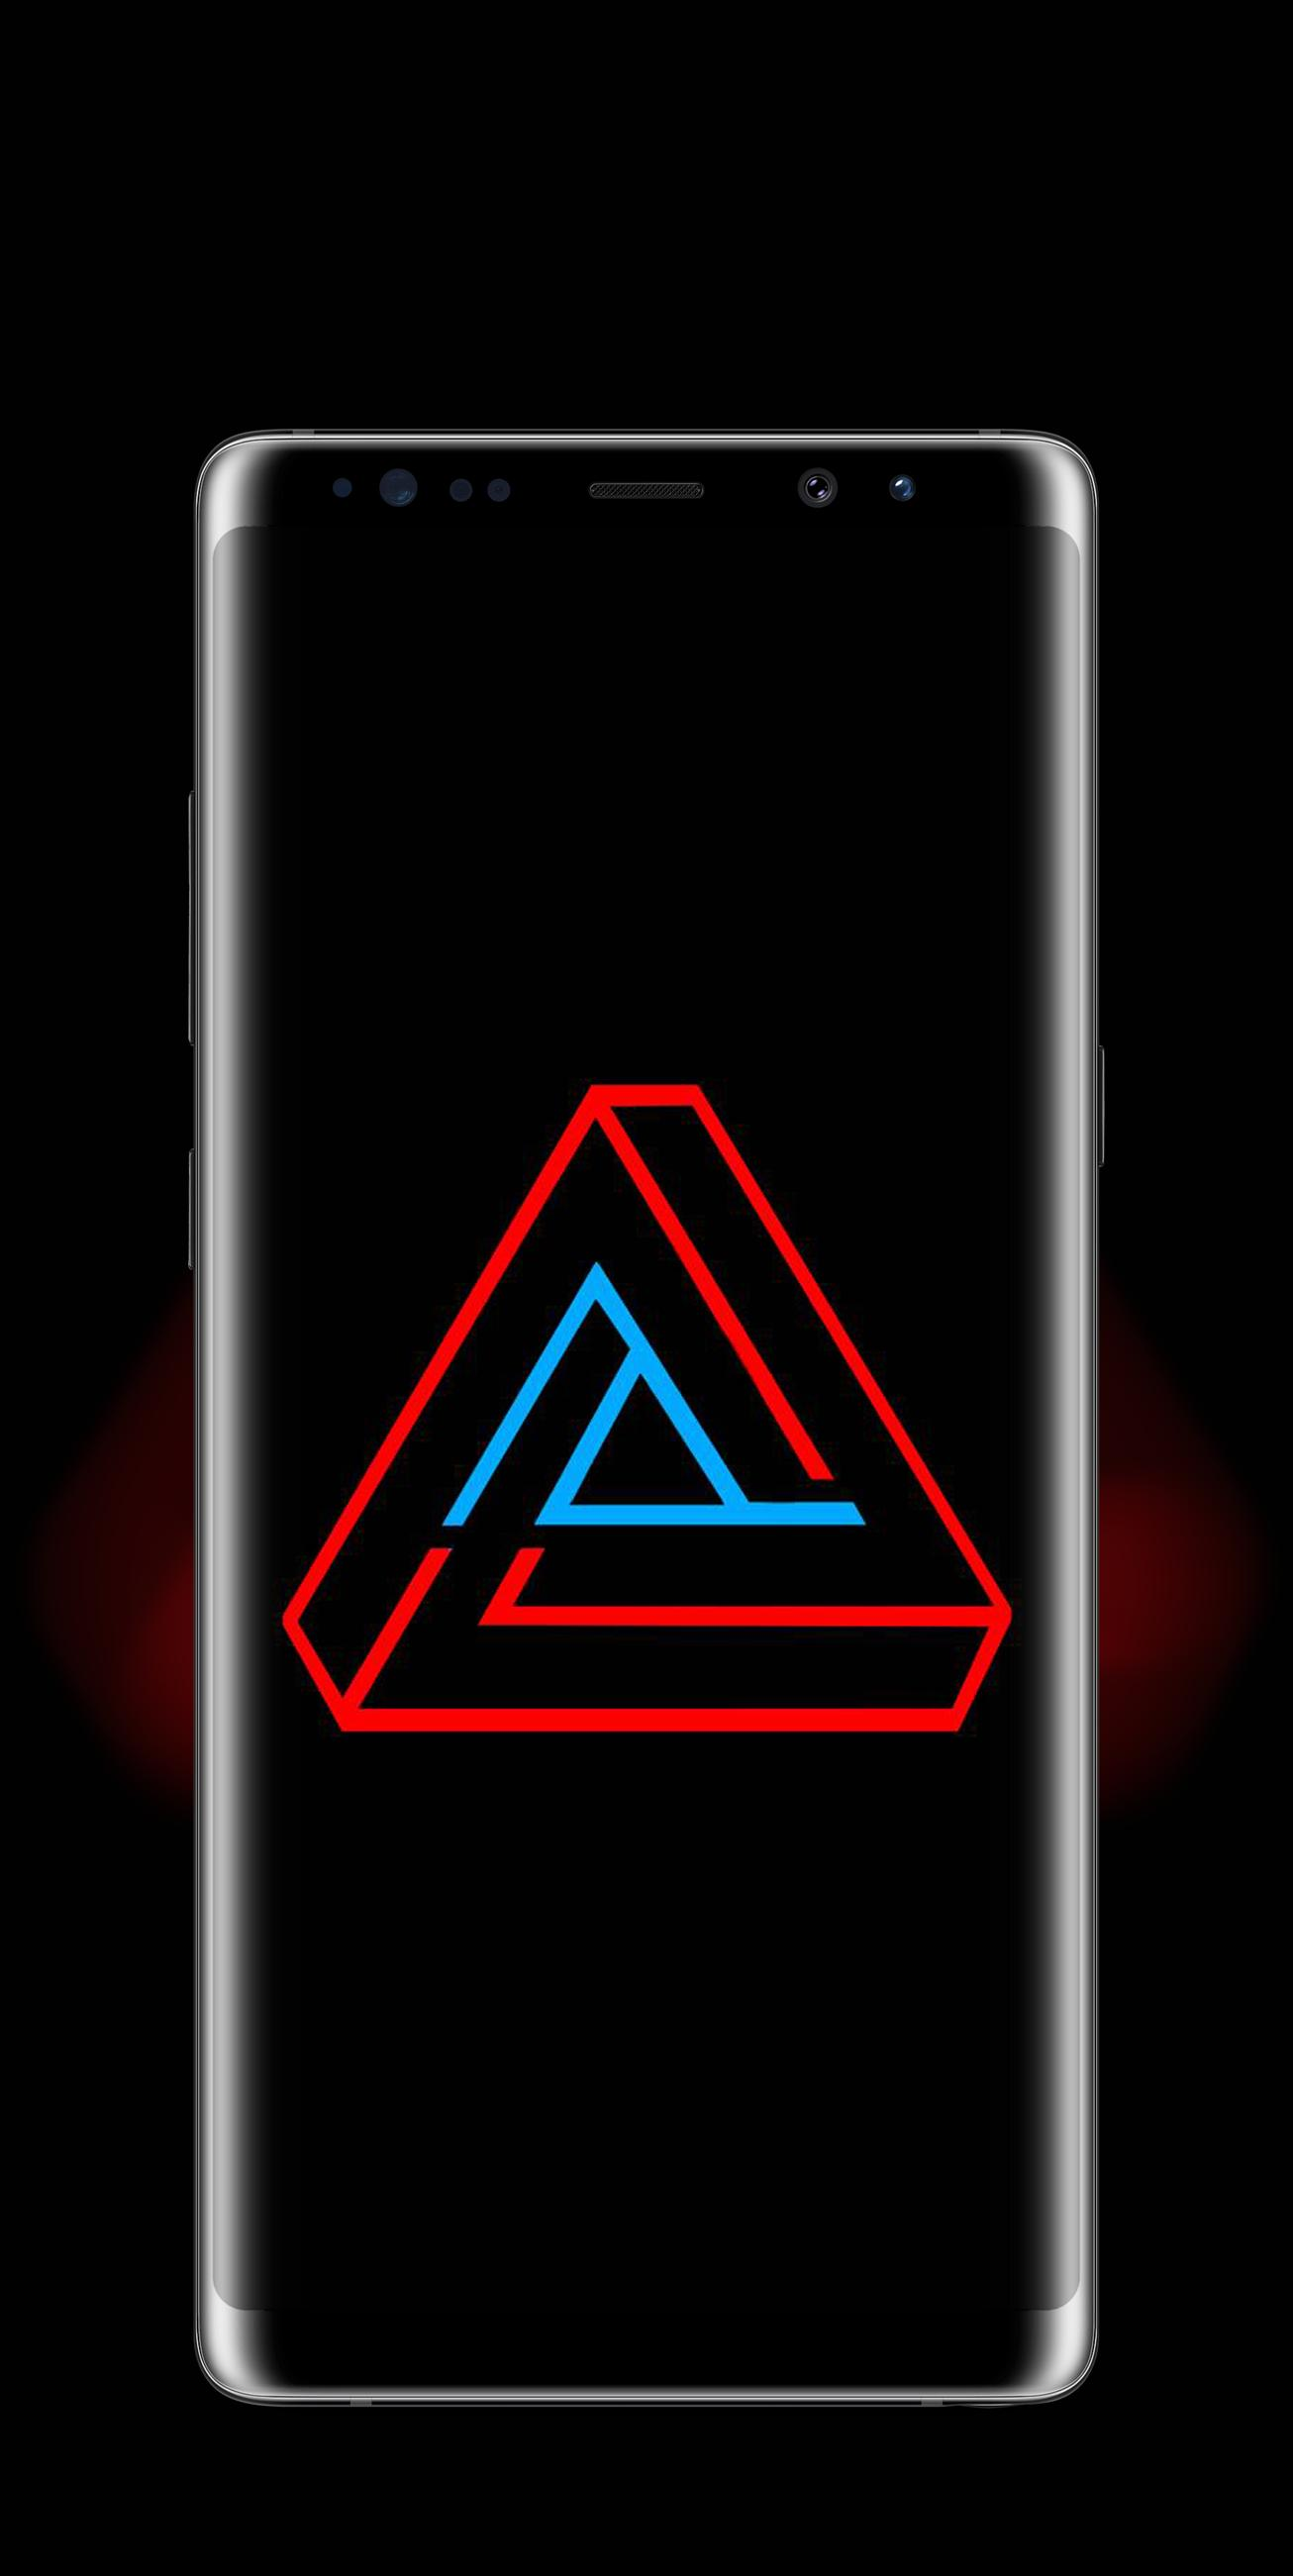 Amoled Wallpapers 4k For Android Apk Download